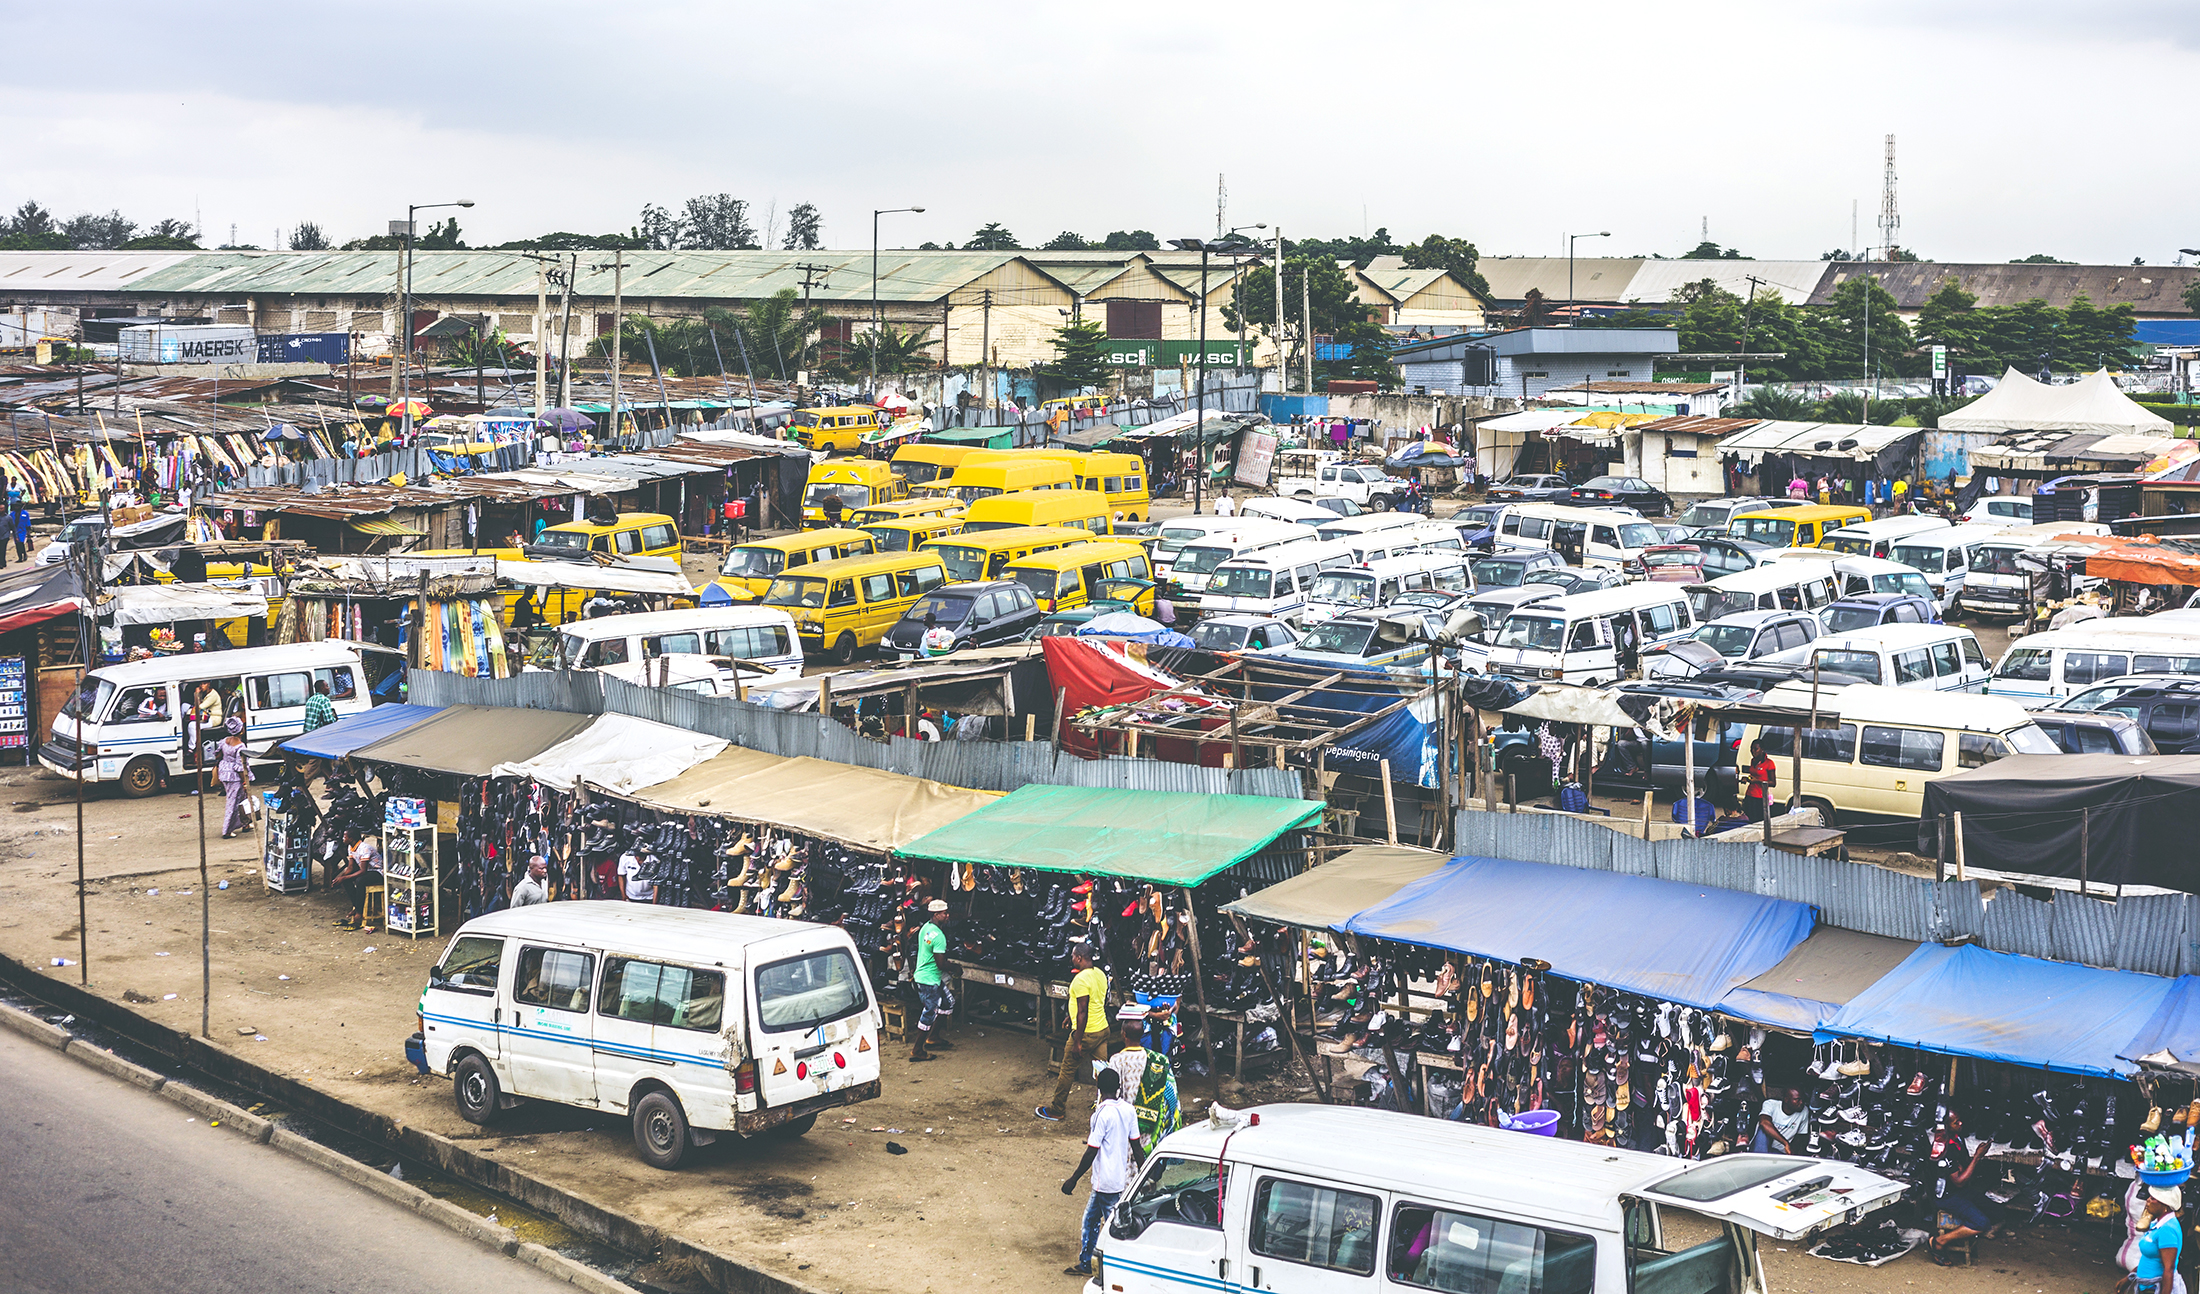 A crowded bus station in Lagos, Nigeria. The country's 170 million-strong population has put a strain on its housing market